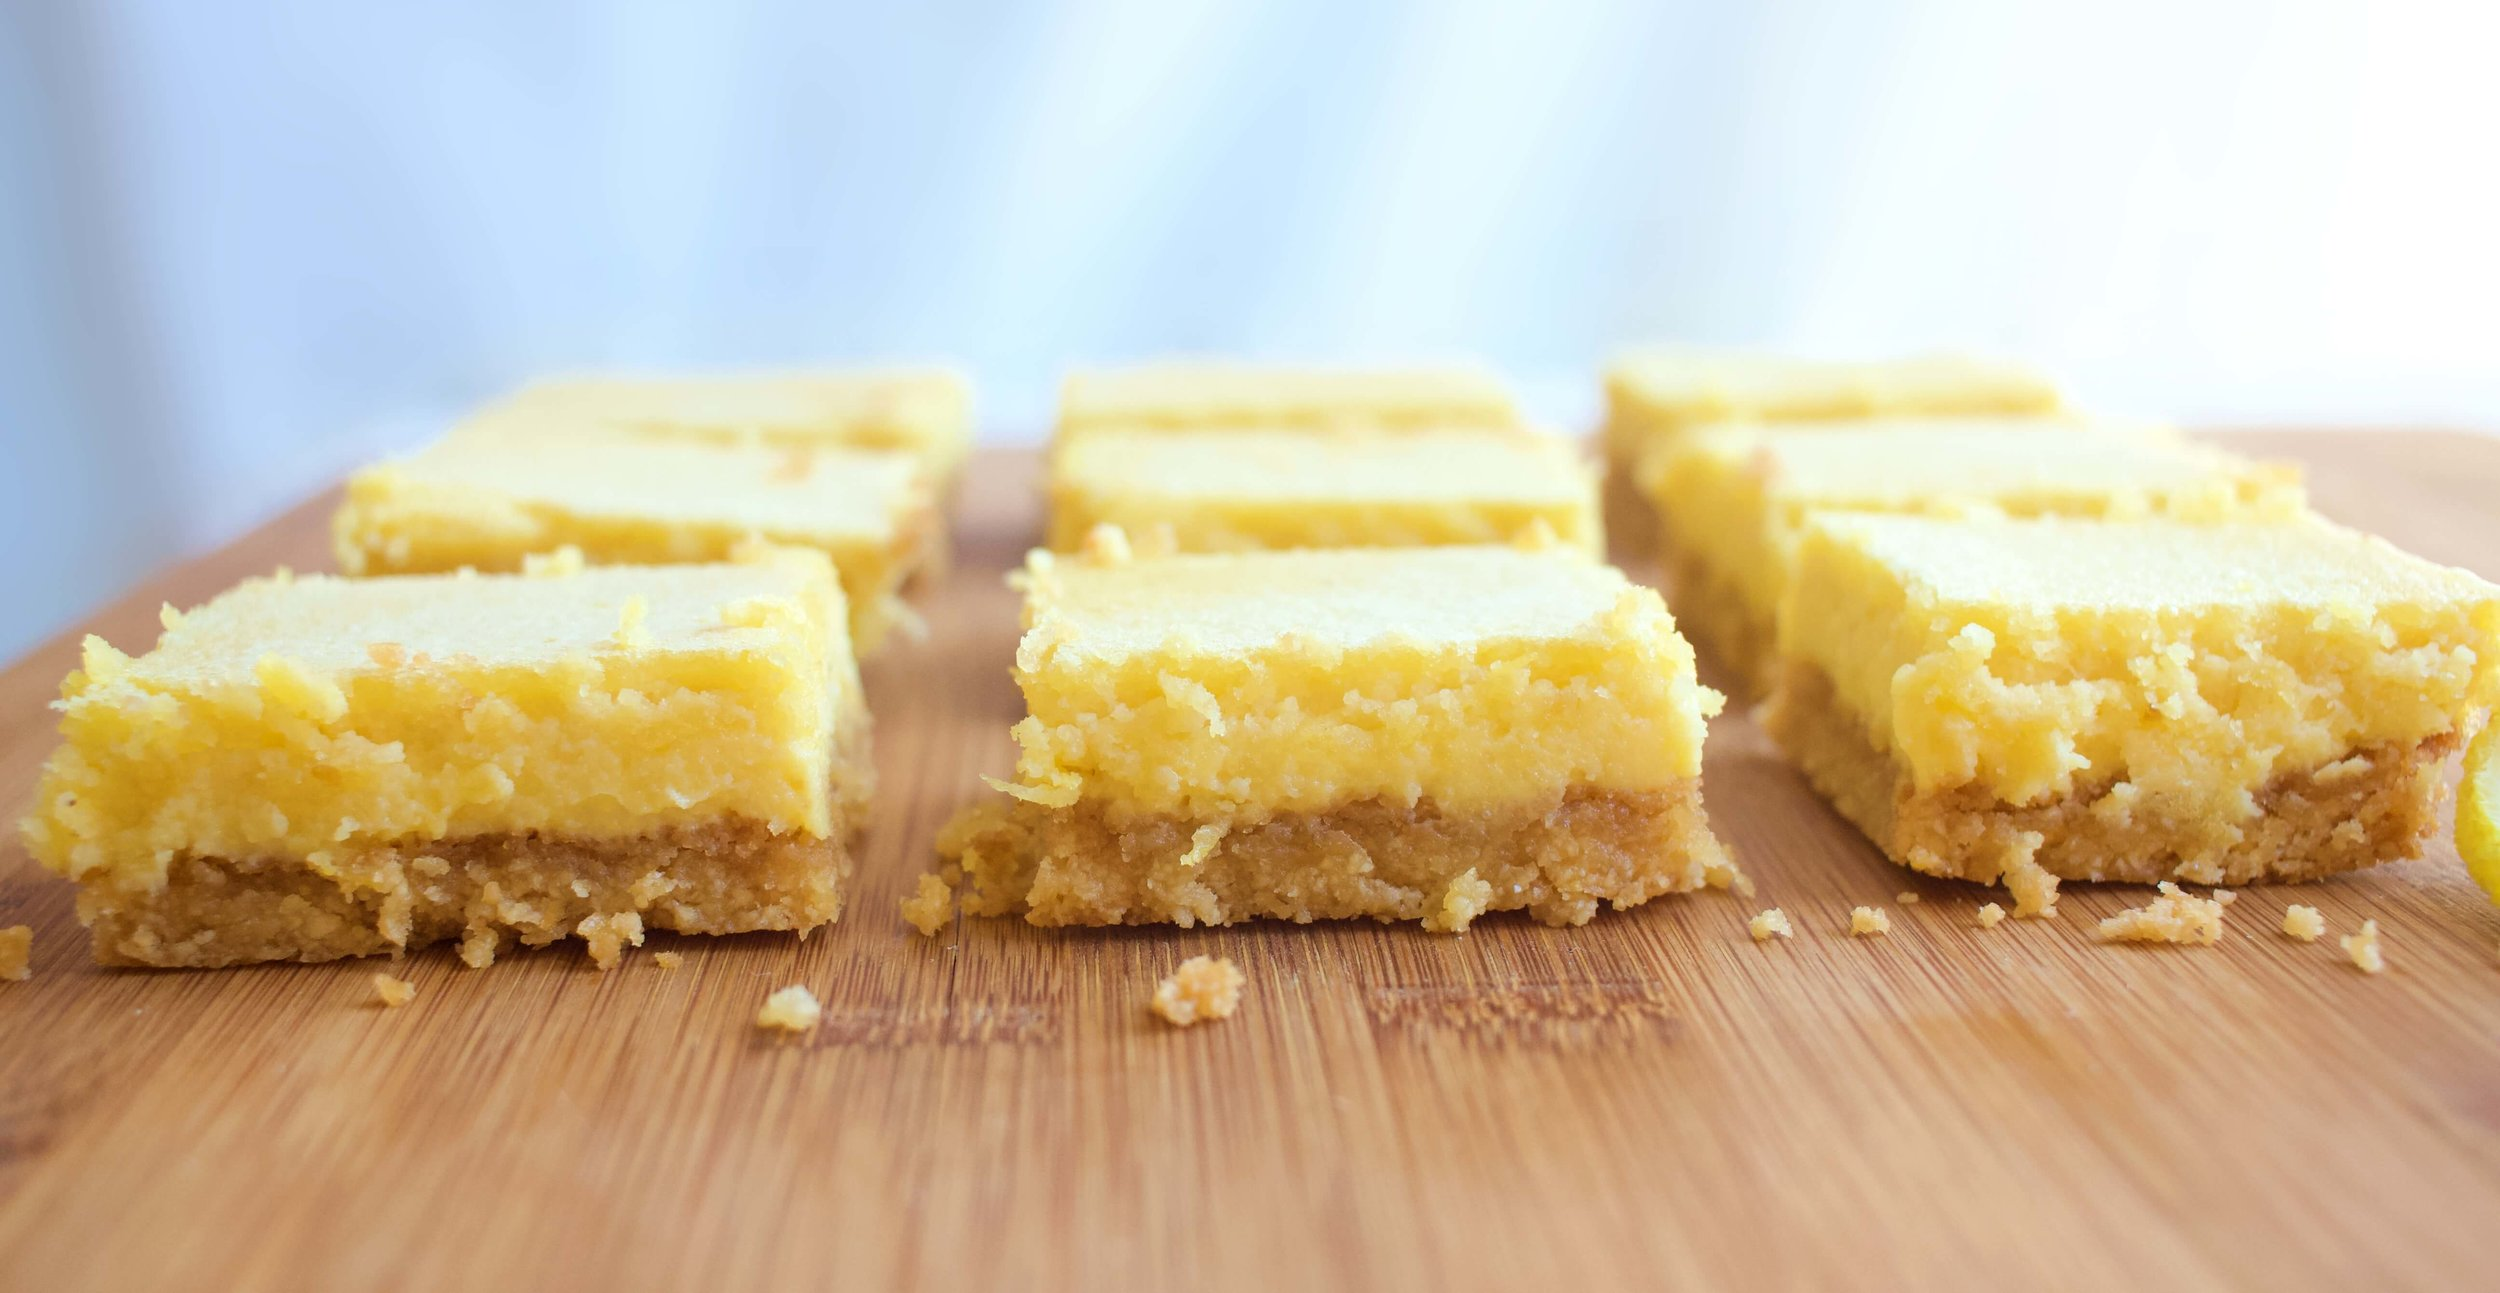 With a golden shortbread crust and creamy, tart filling, this keto lemon bars recipe is made for every lemon lover in your life!